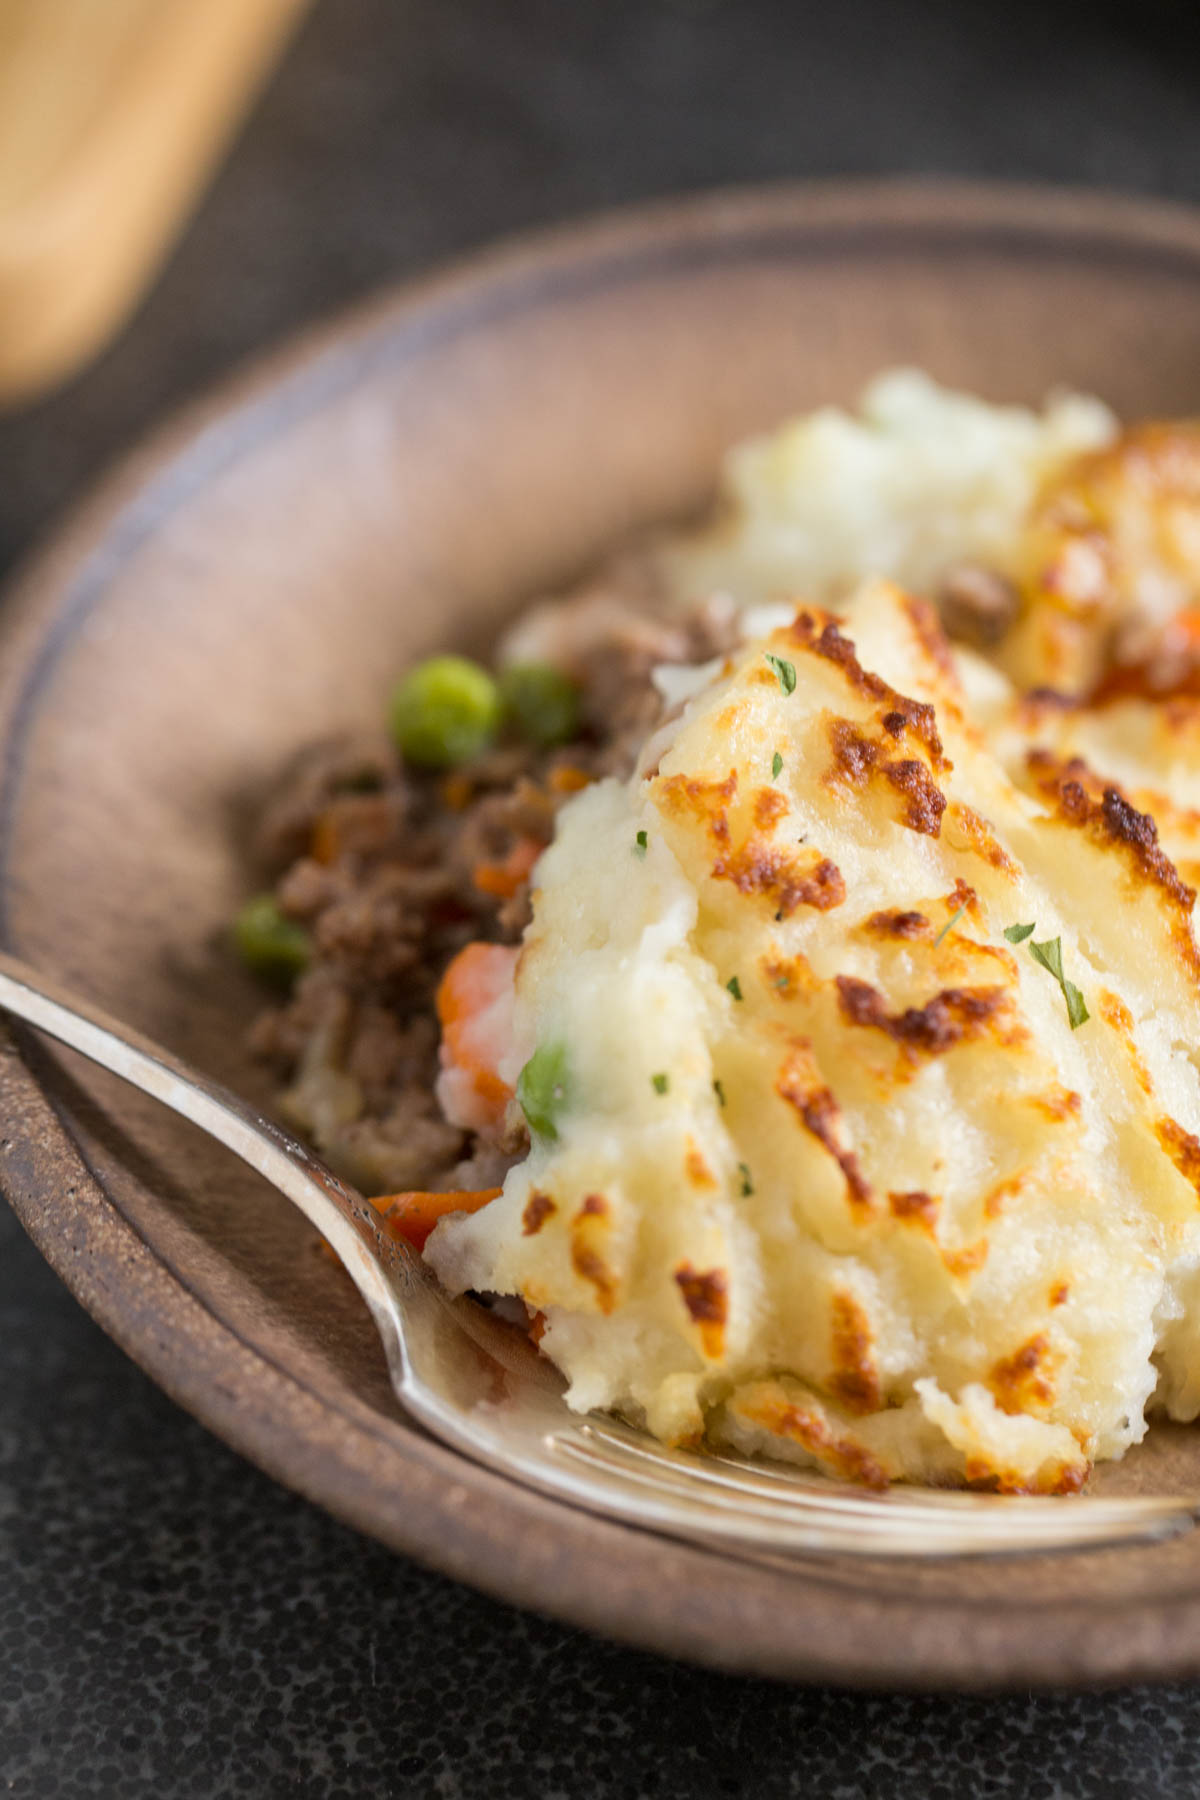 Thanks to a couple of shortcuts, this Easy Homemade Shepherd's Pie is a new weeknight dinner family favorite! Perfect for cozy winter nights.